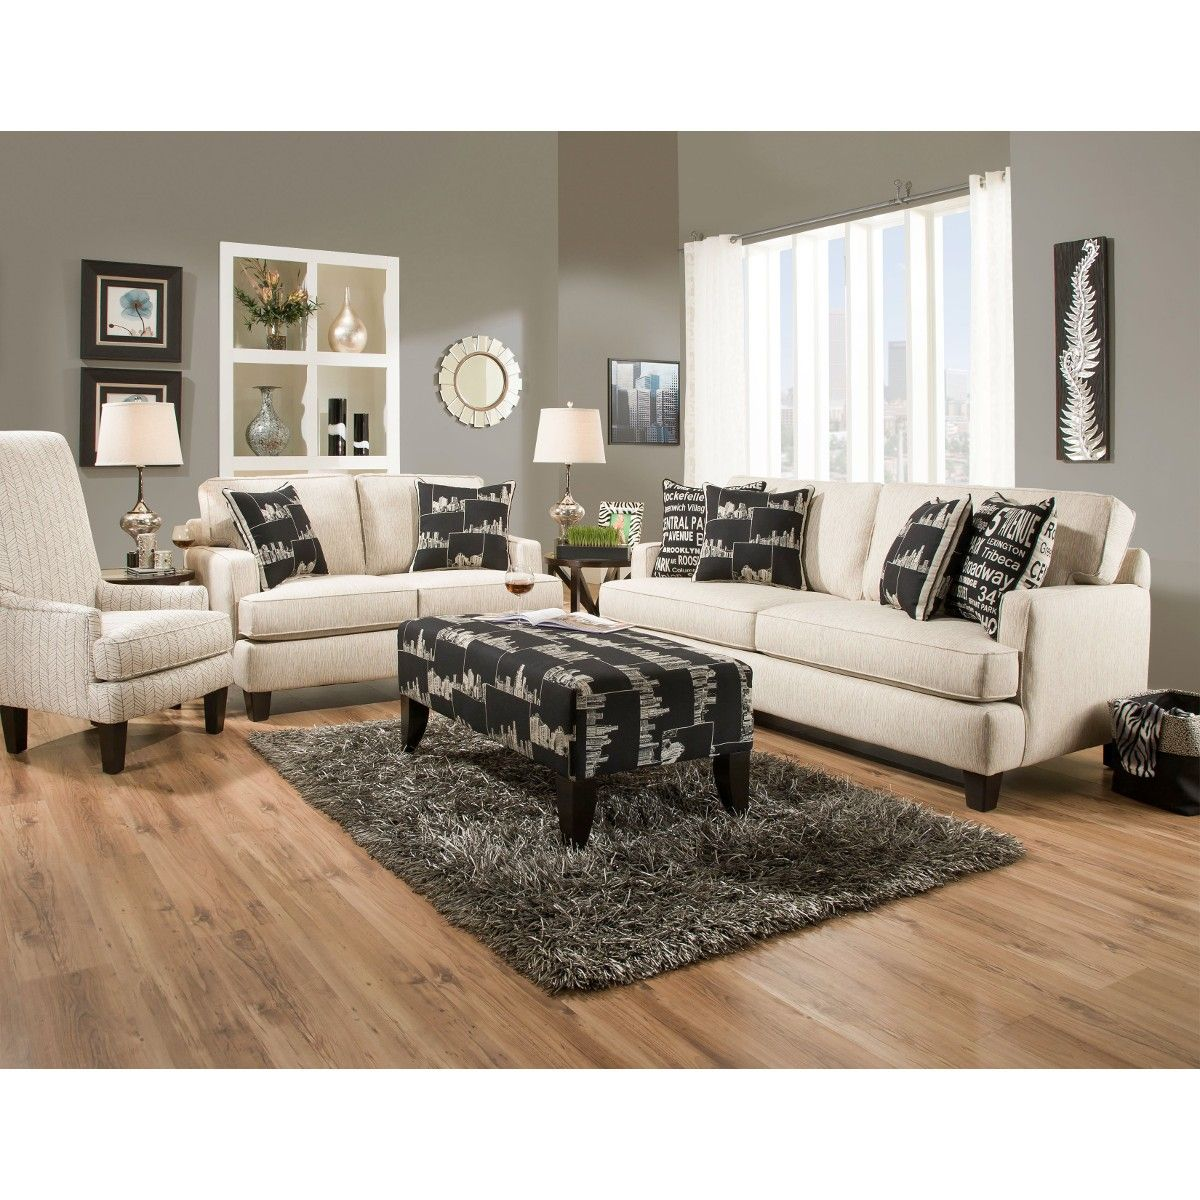 Cityscape Living Room Sofa Loveseat G870 Conn S Home Ideas